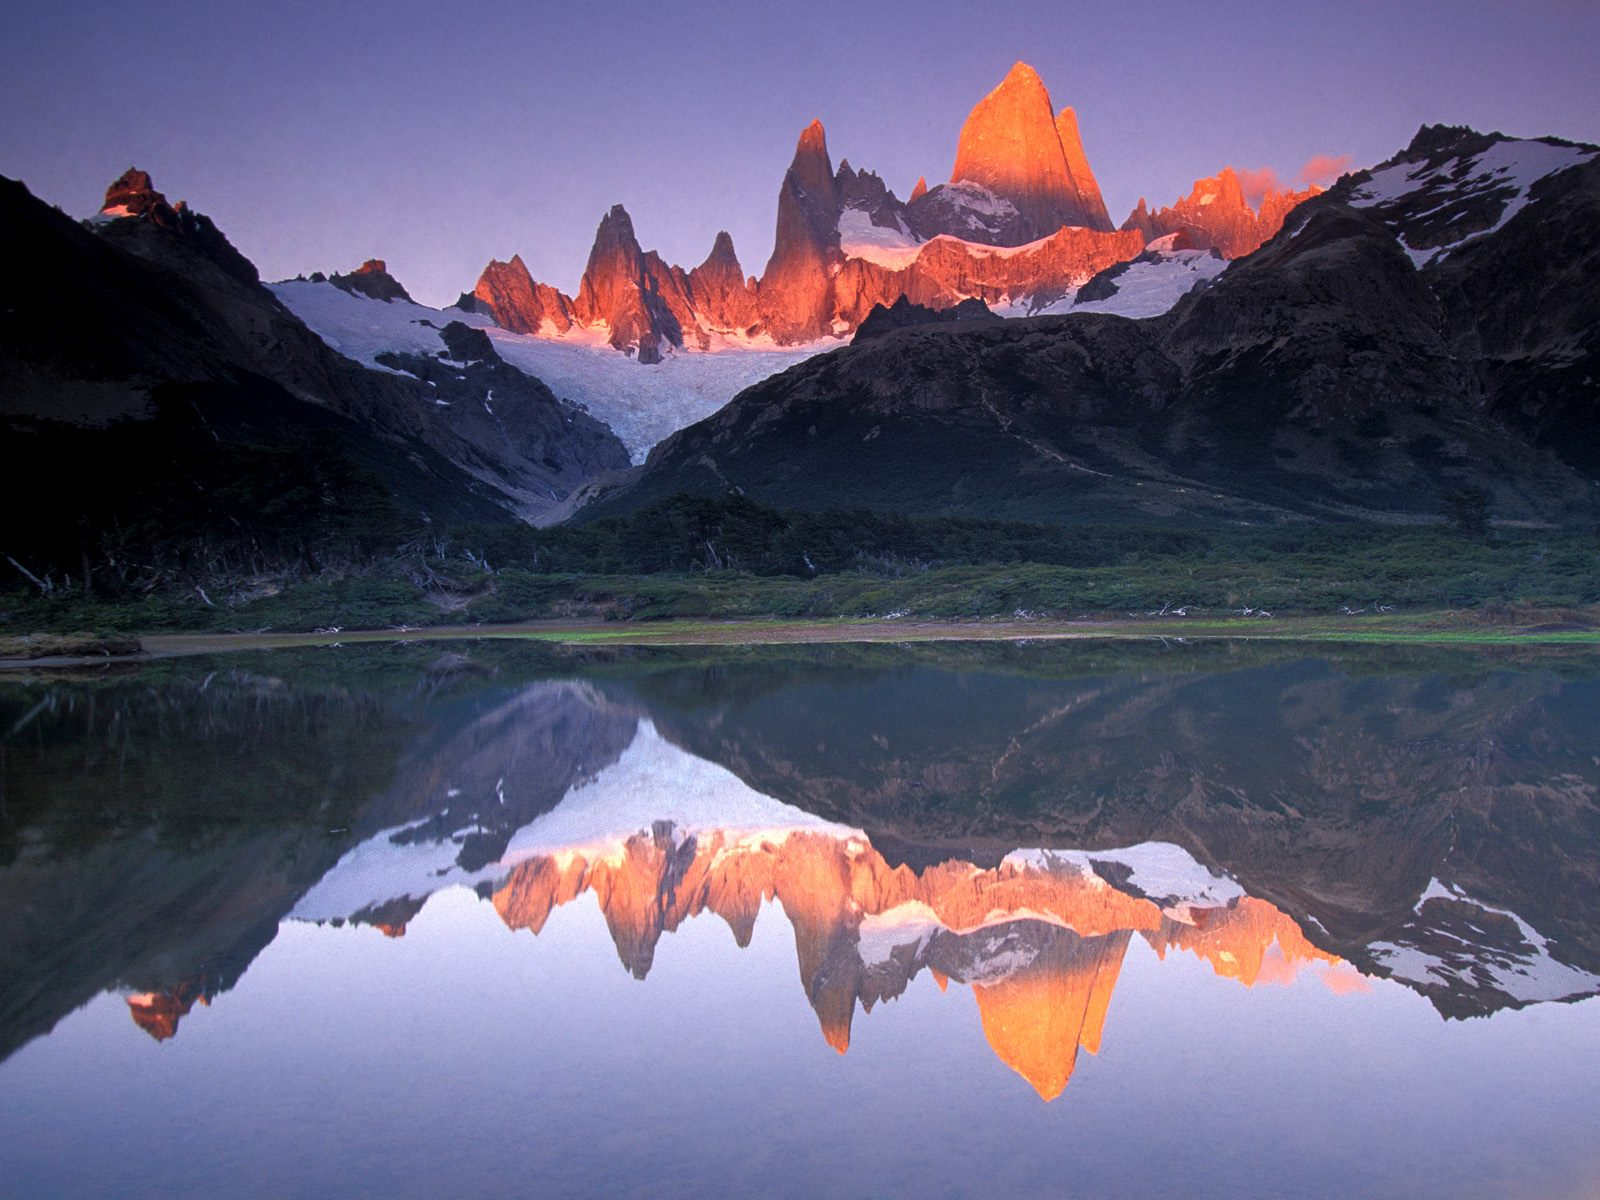 Patagonia, Argentina | @projectinspo